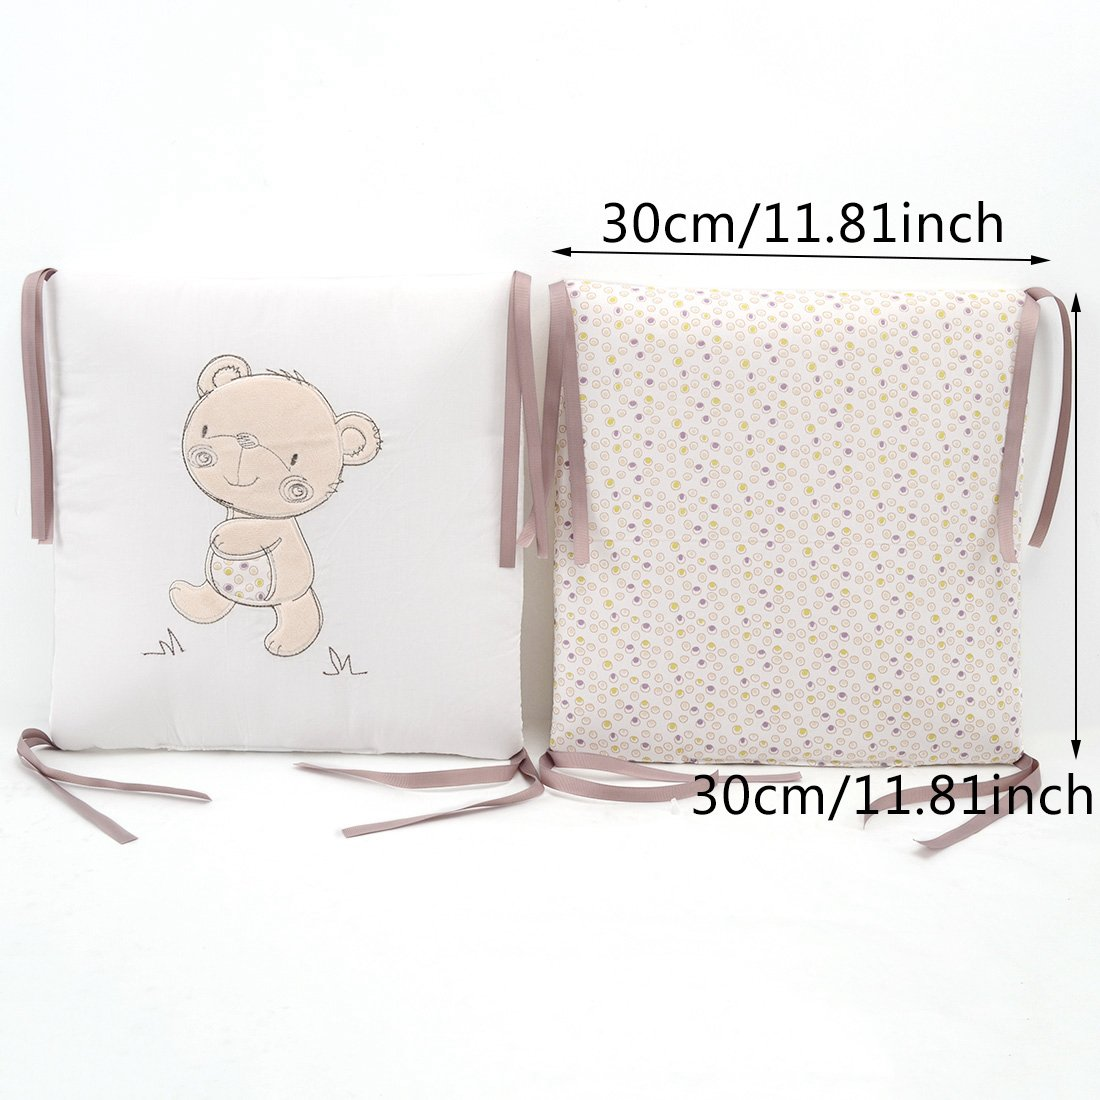 Hengfey Cotton Breathable Baby Crib Bumpers Beige 6 PCS by FREAHAP R (Image #2)